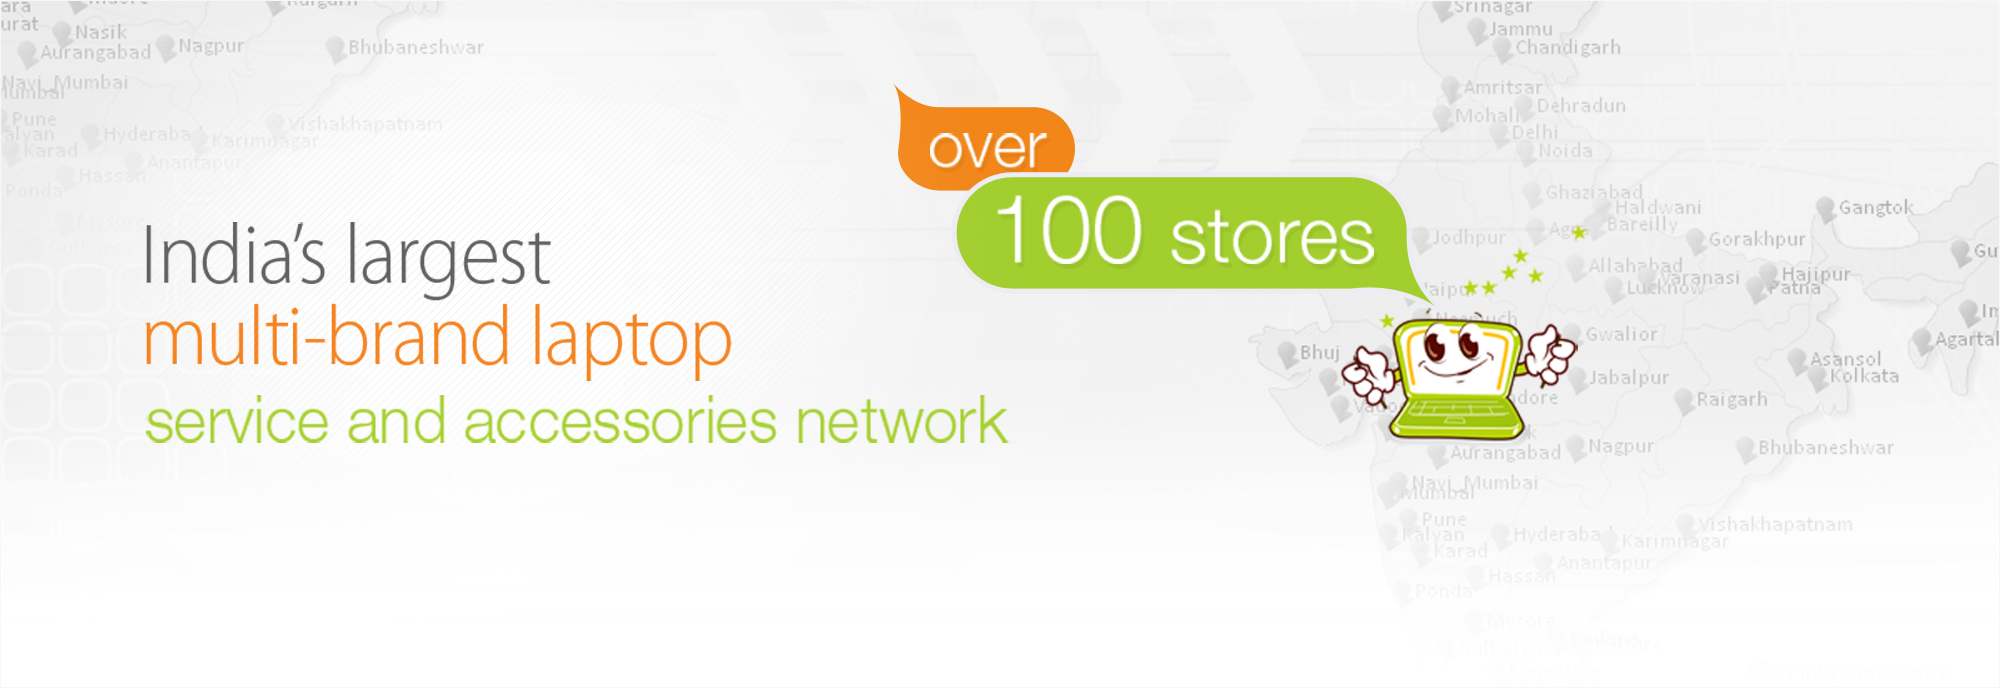 Clublaptop : India's largest multi brand laptop service & accessories network